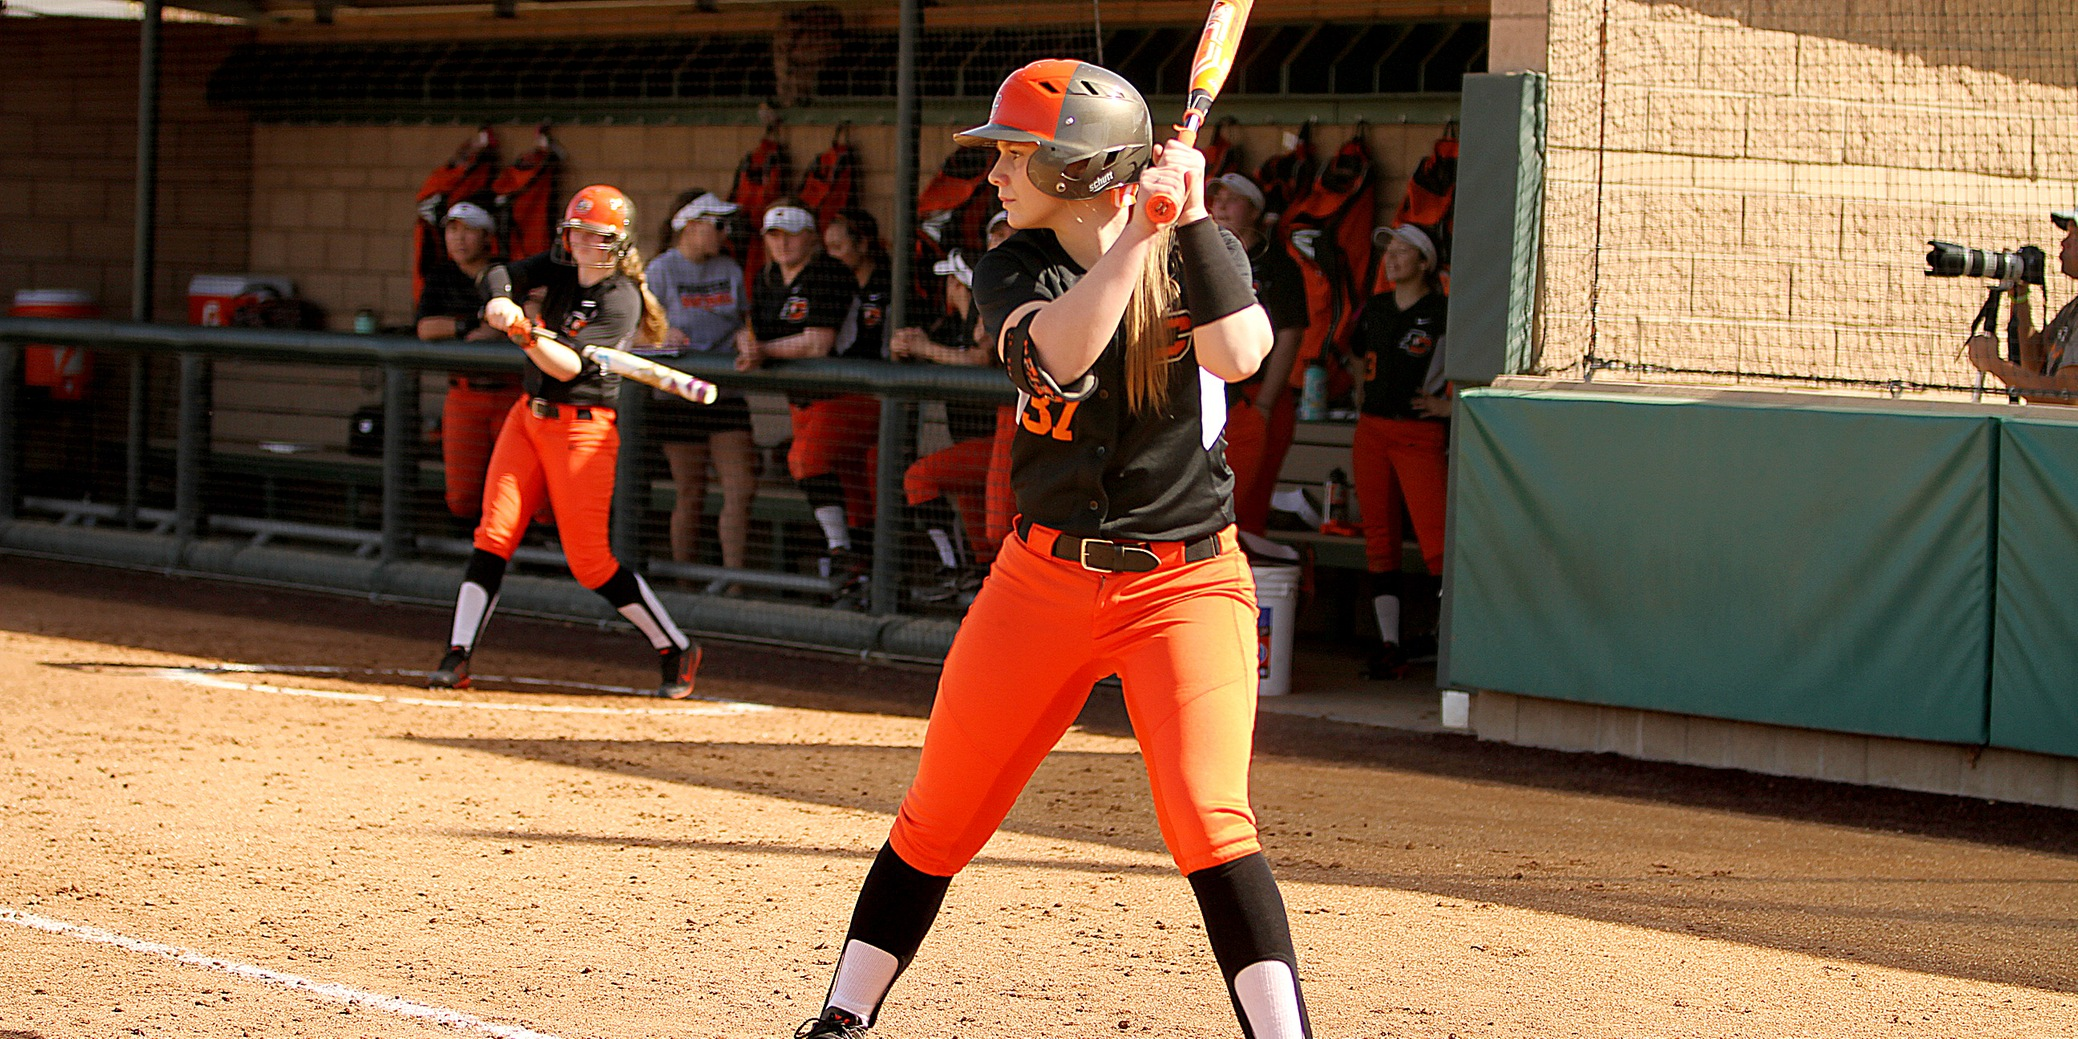 Lewis & Clark wins NWC opener, splits day against PLU